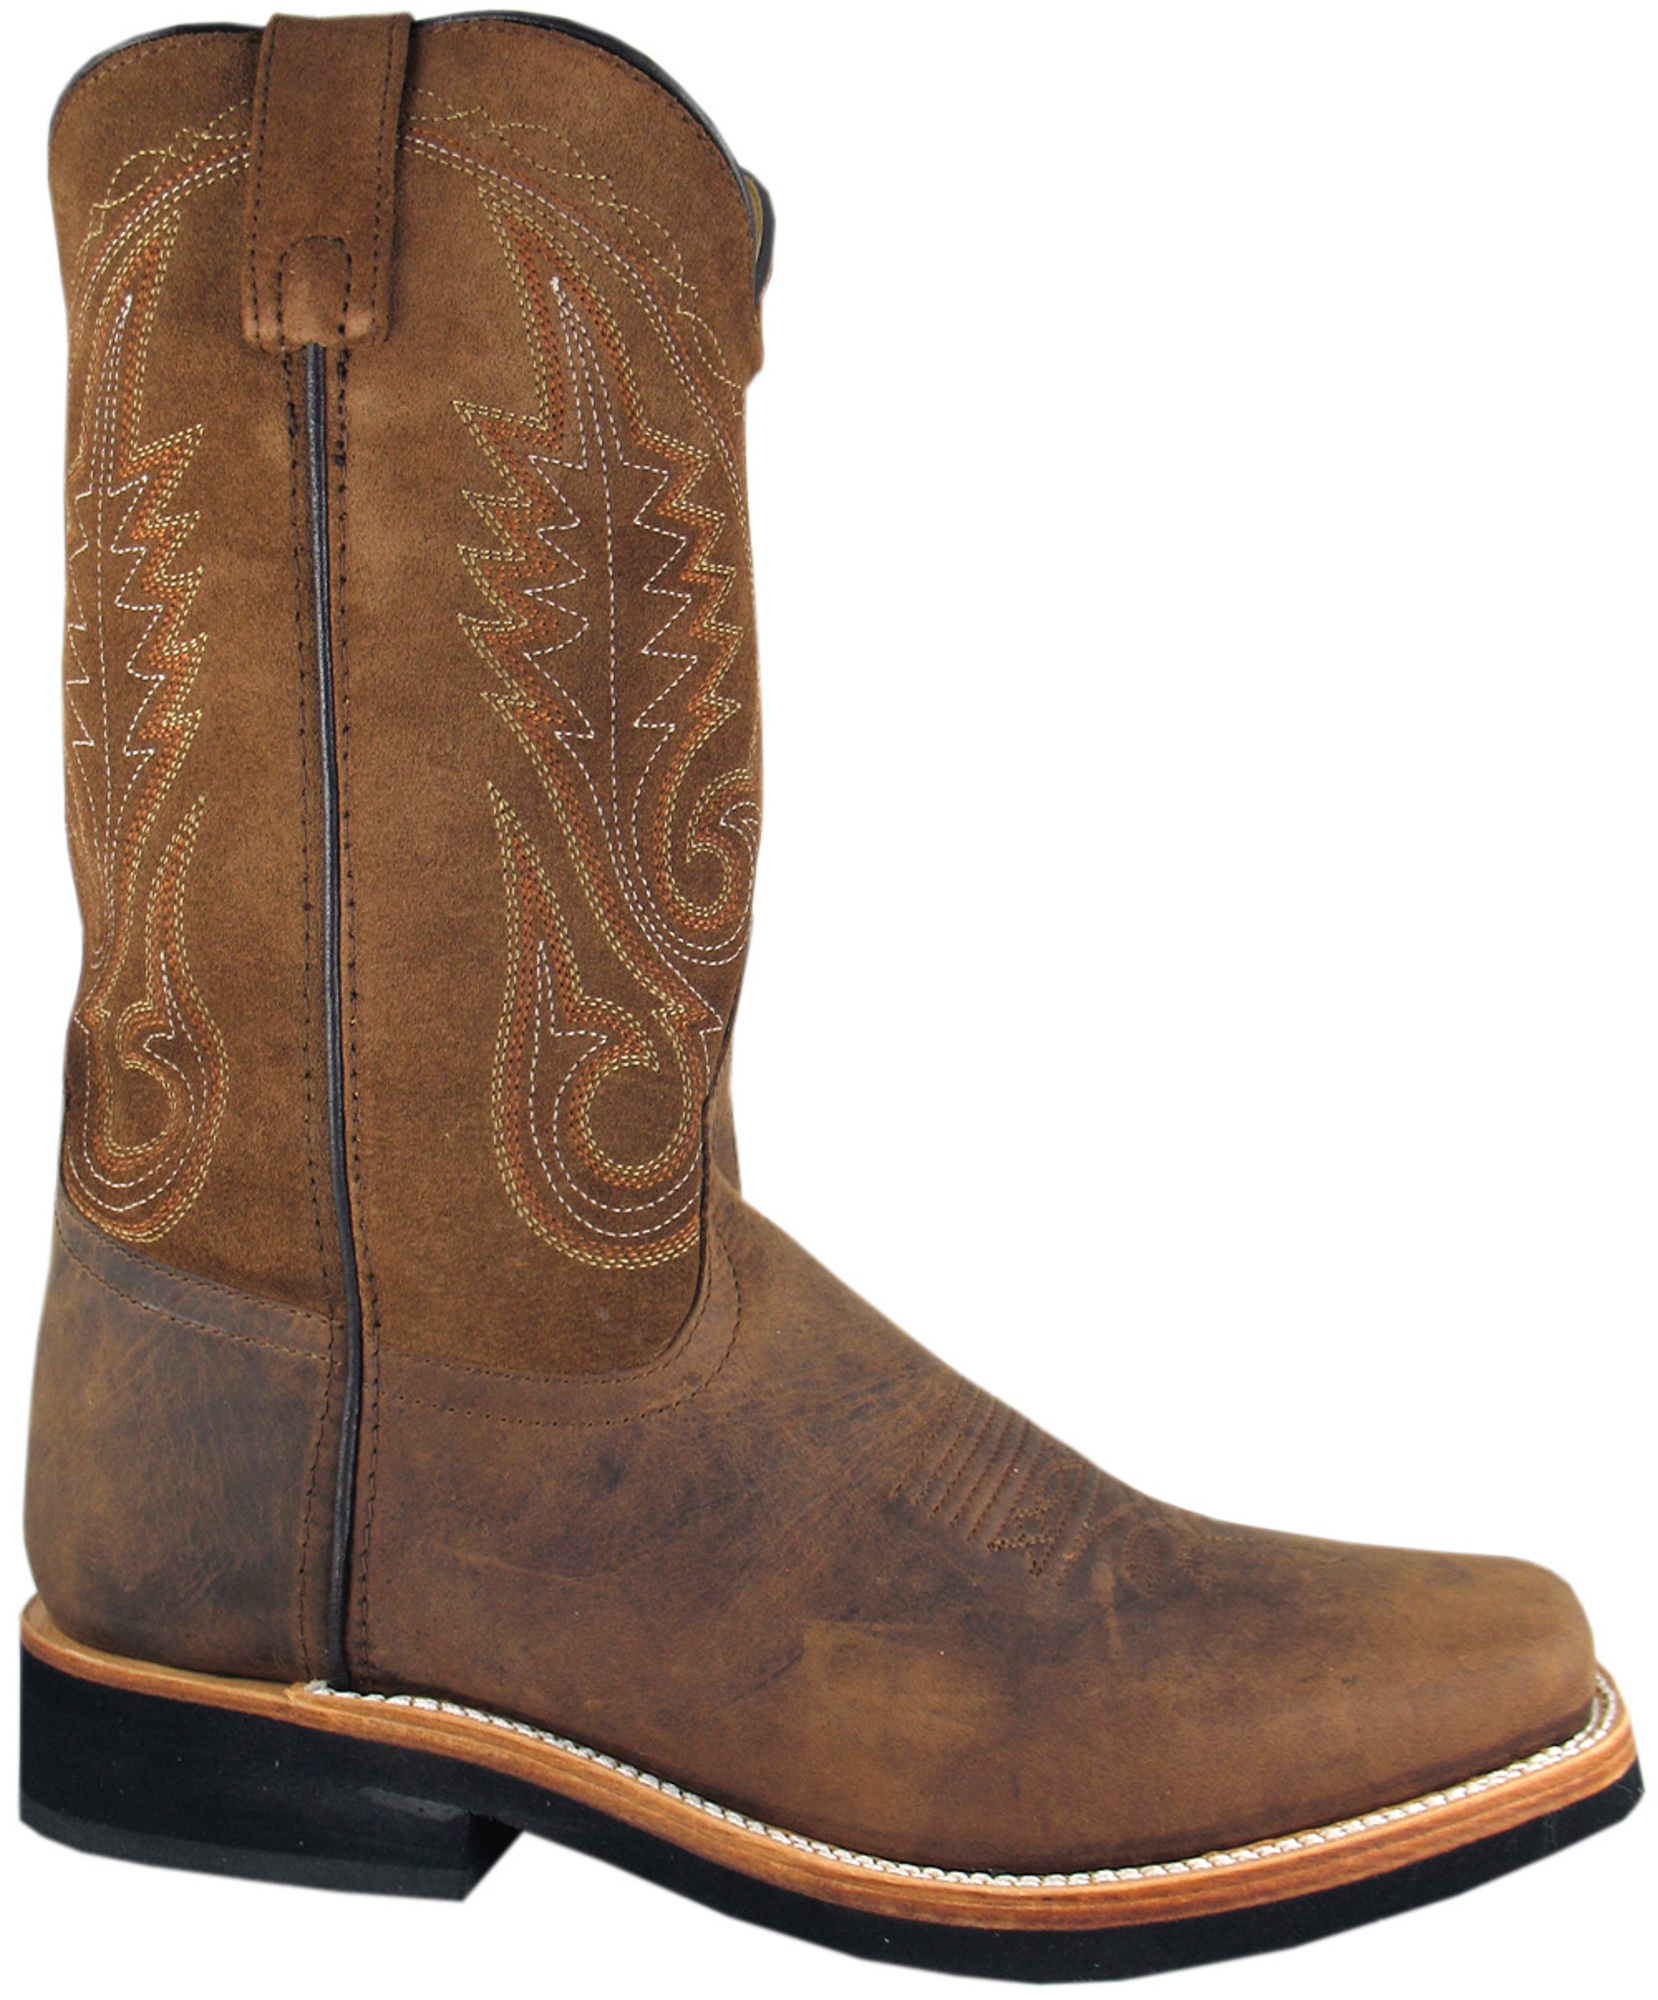 smoky mountain boots mens boonville brown distress leather